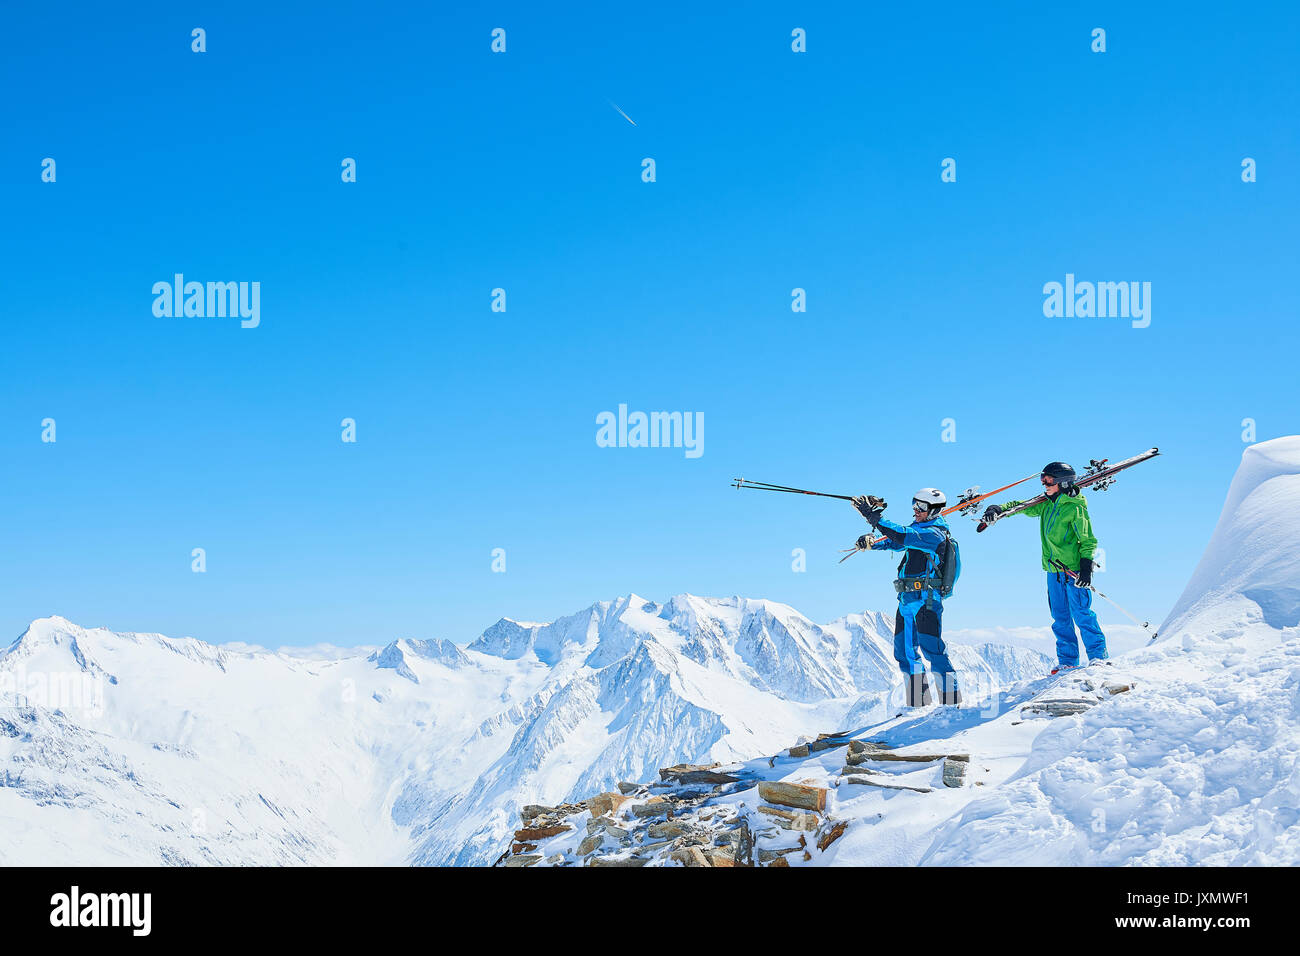 Father and son on skiing holiday, Hintertux, Tirol, Austria - Stock Image